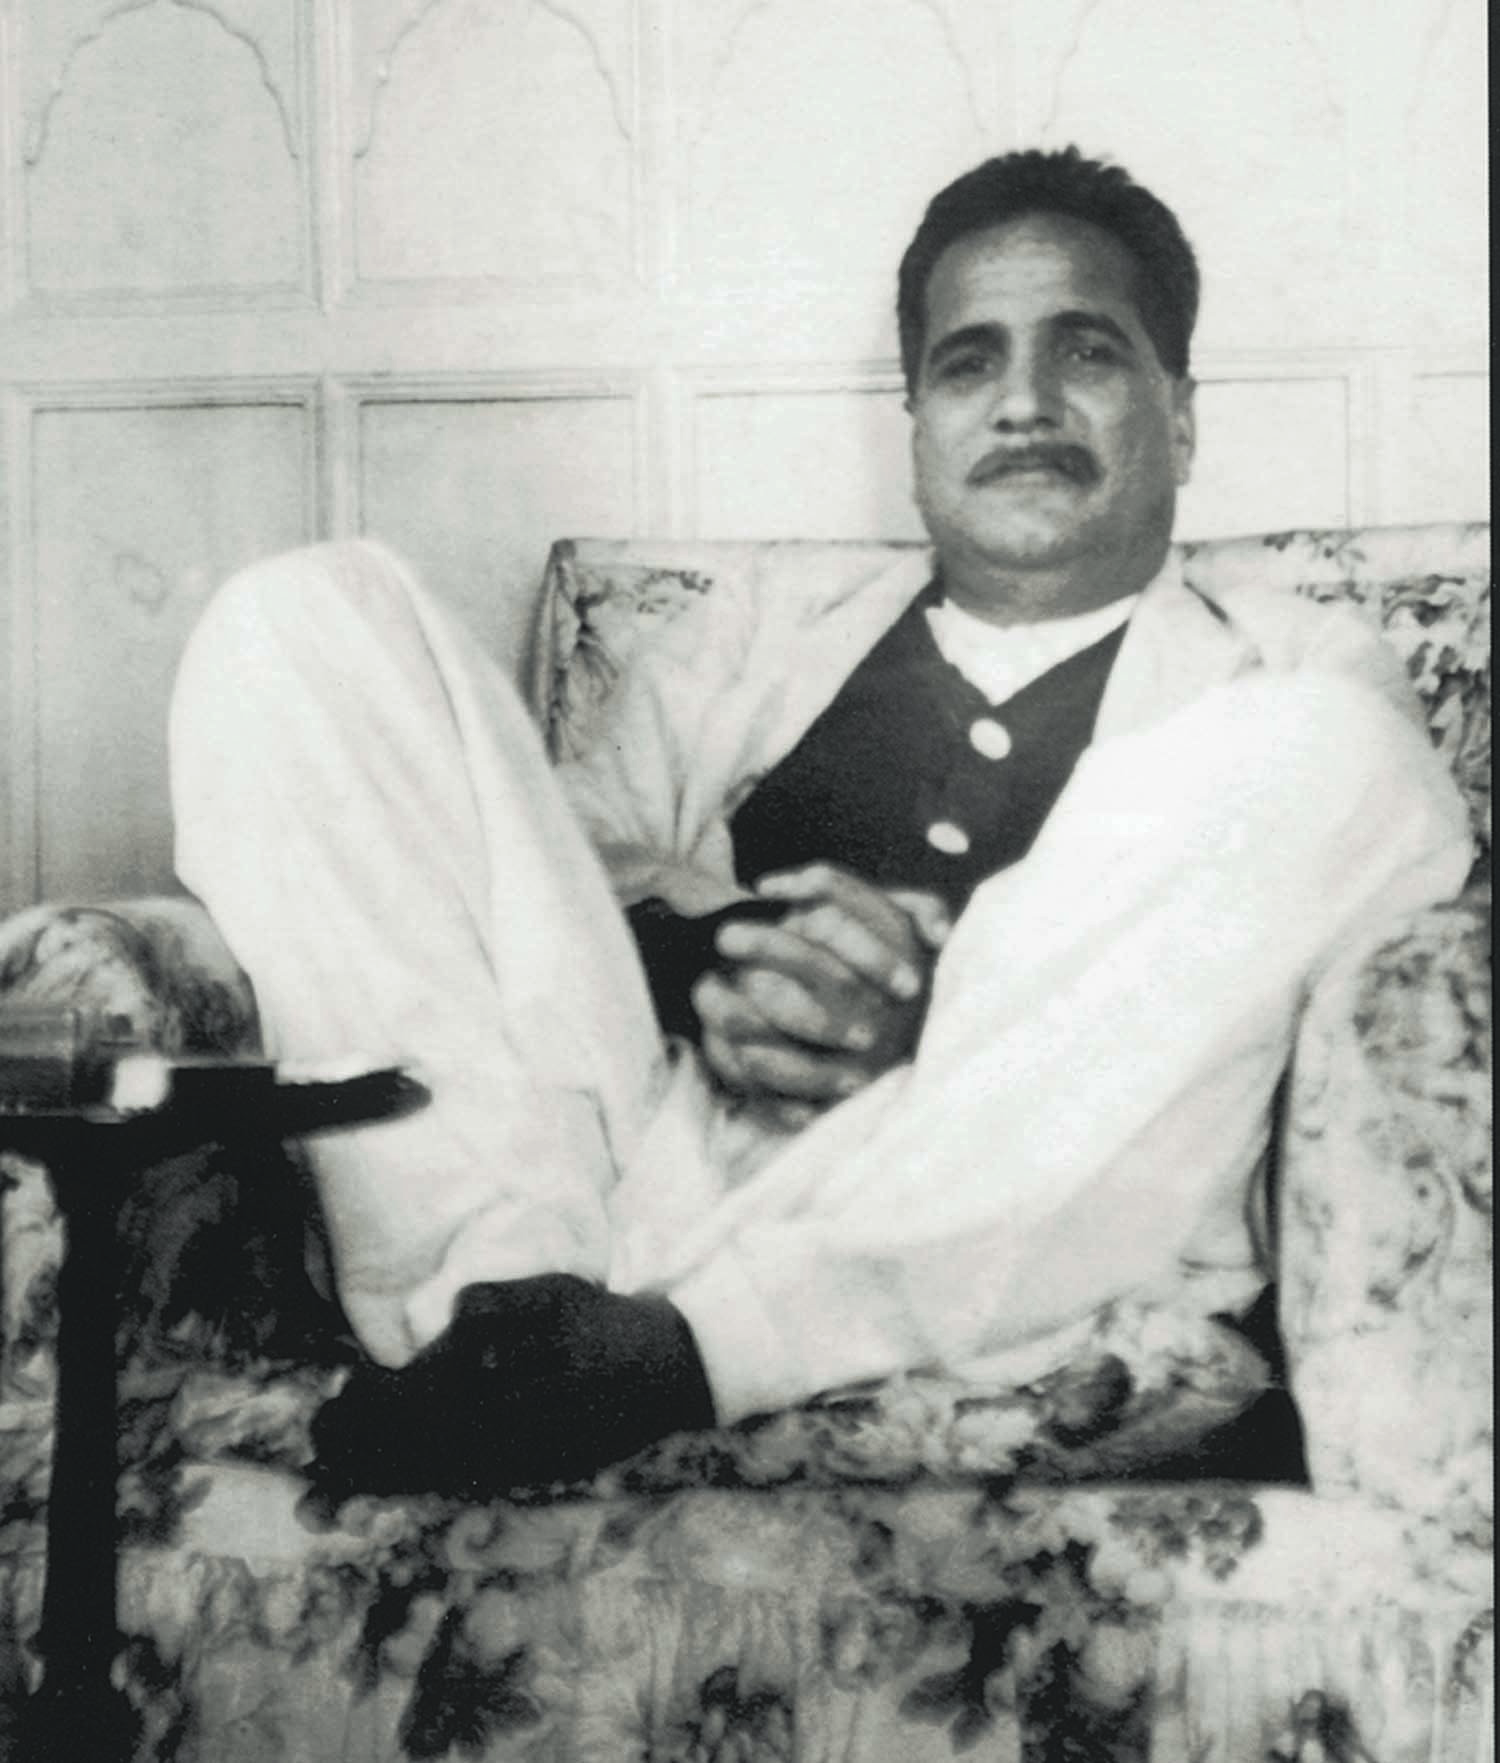 Special report: The enduring vision of Iqbal 1877-1938